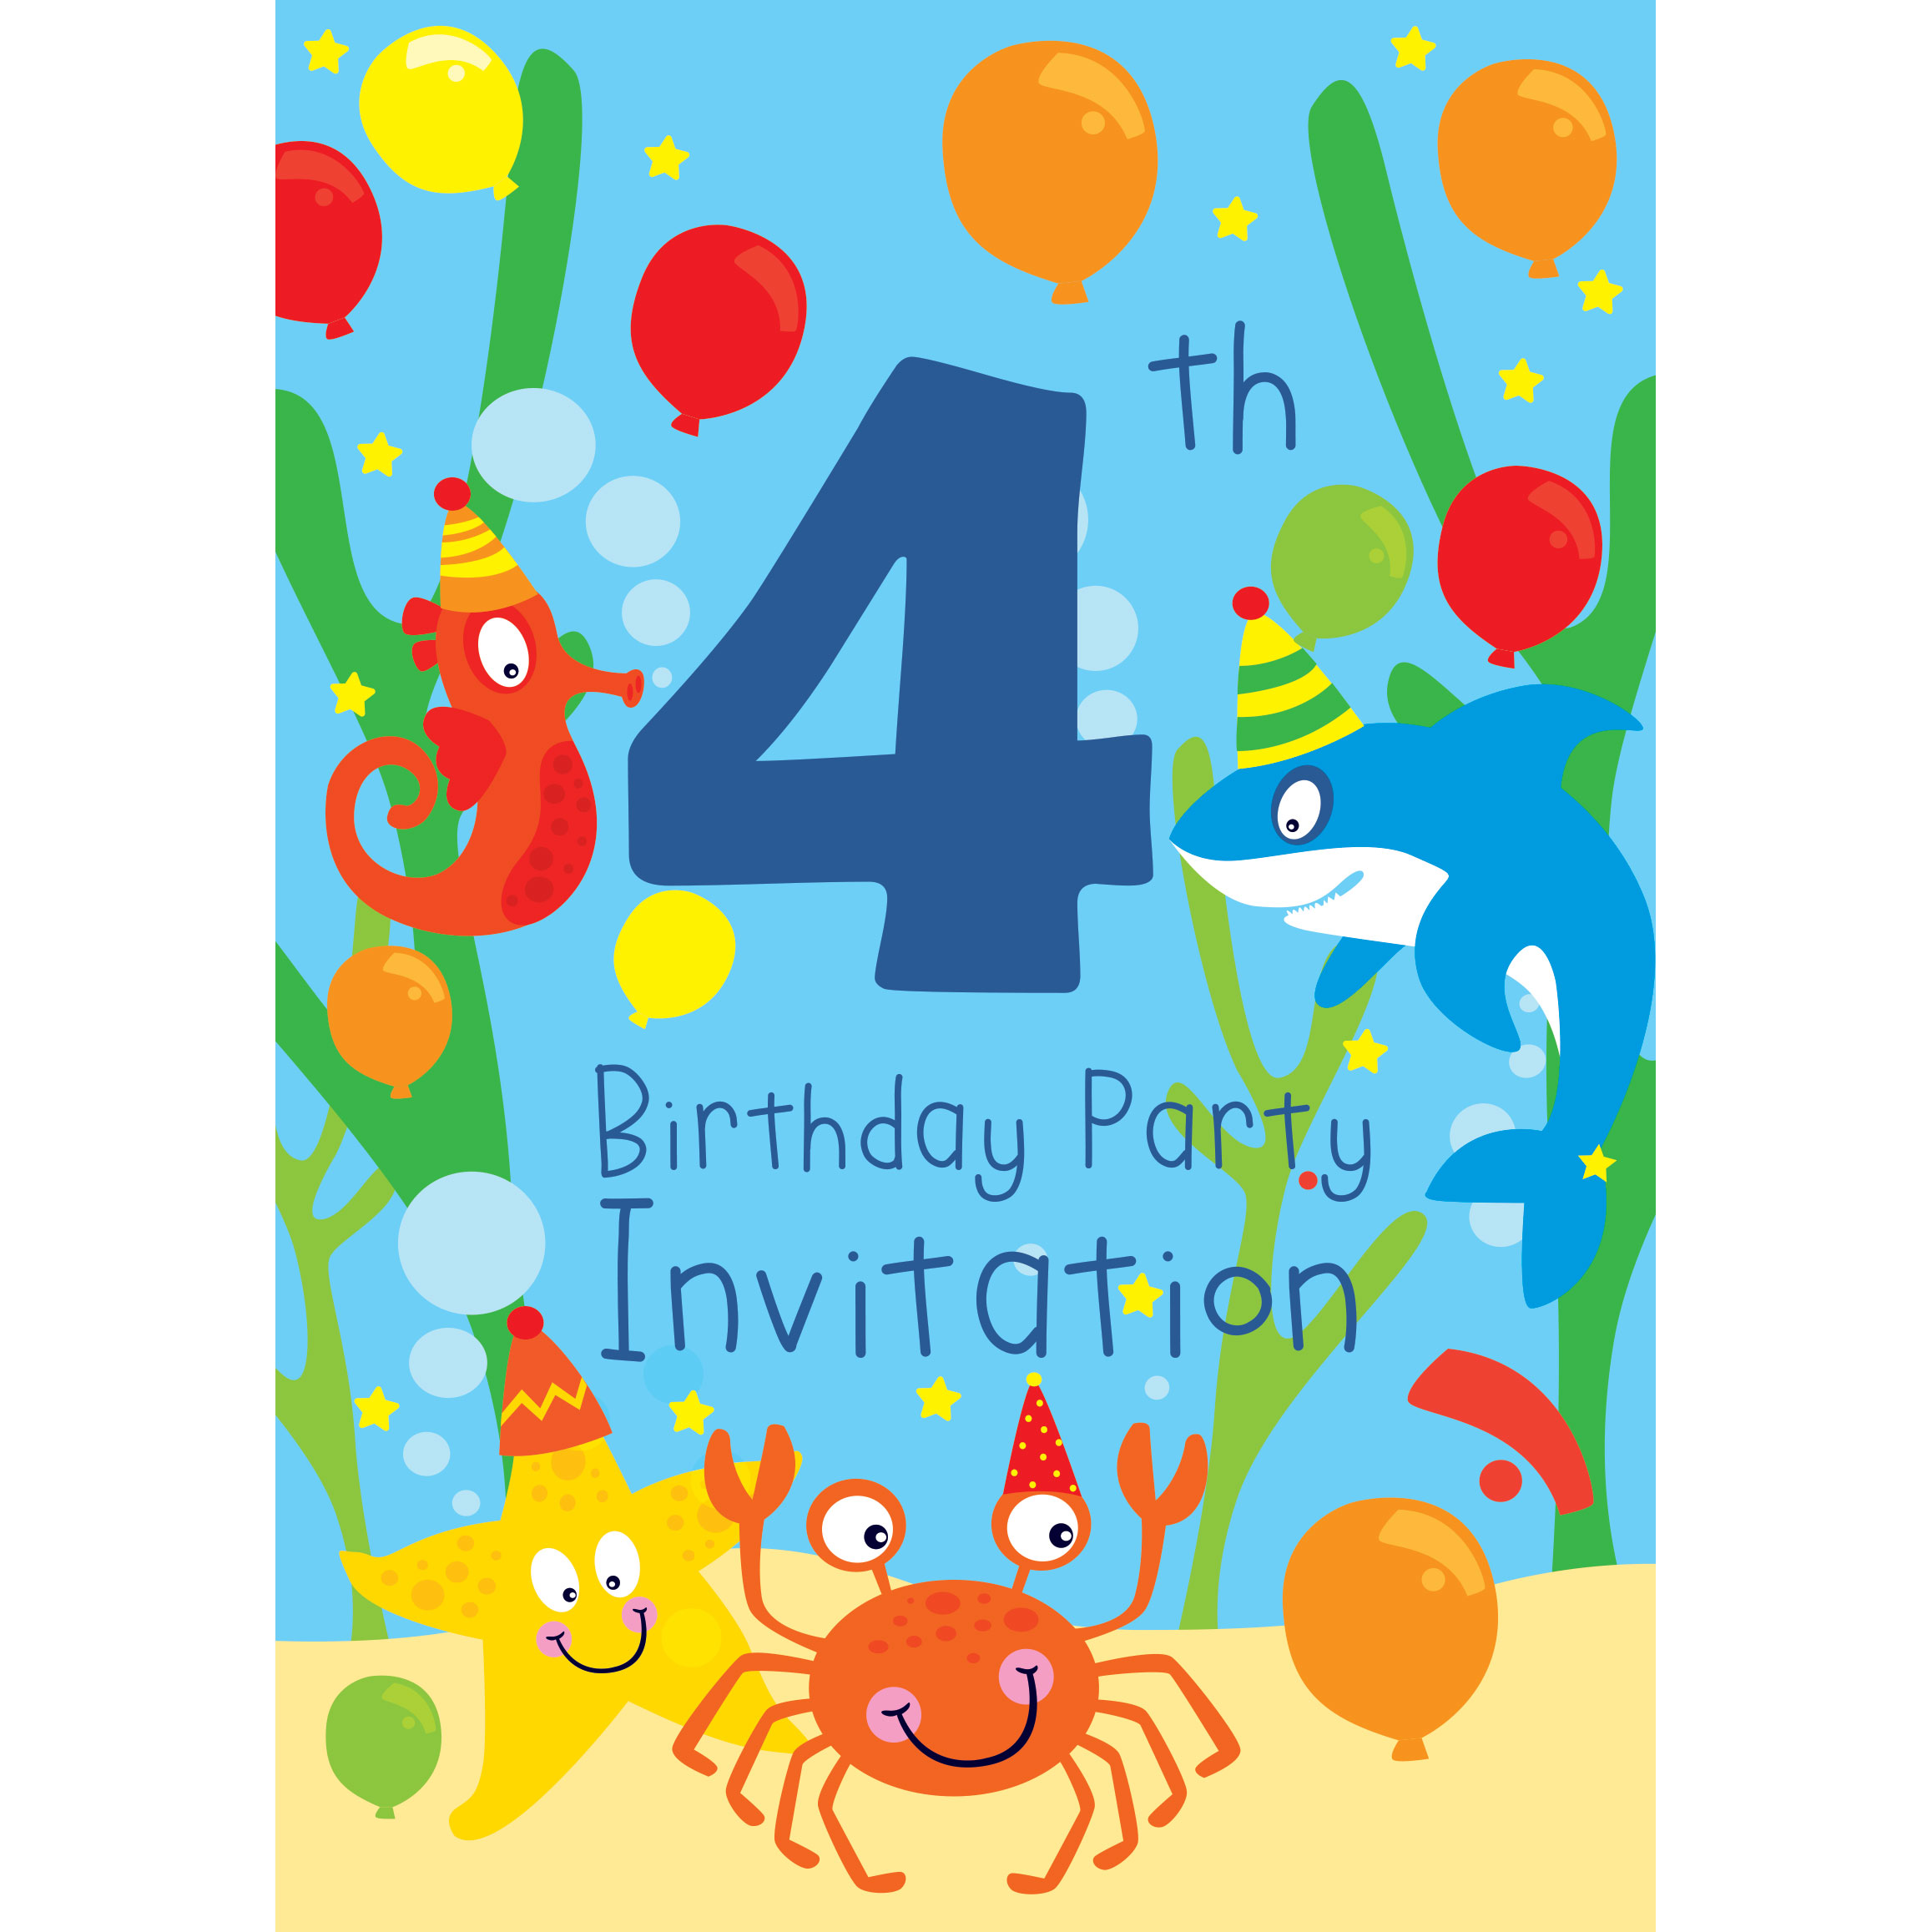 4th birthday party invitation wording - Fieldstation.co